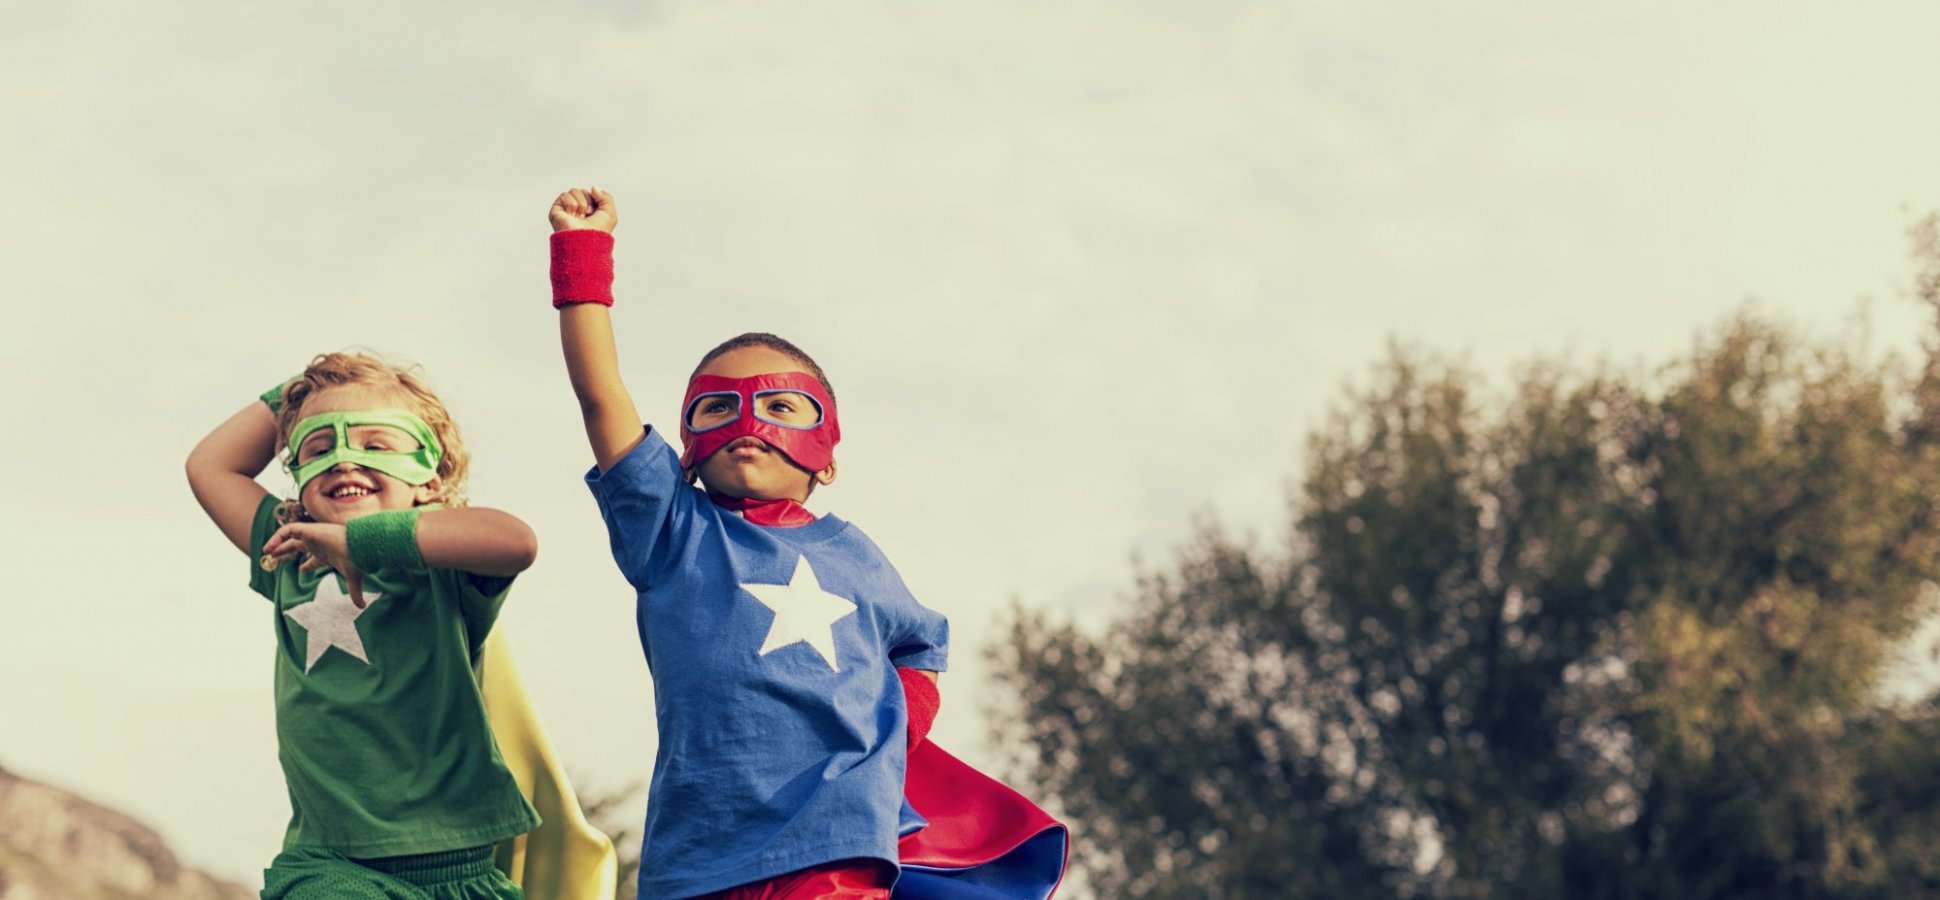 17 Superhero Quotes that Will Save the Day Whether You're a Leader or Not